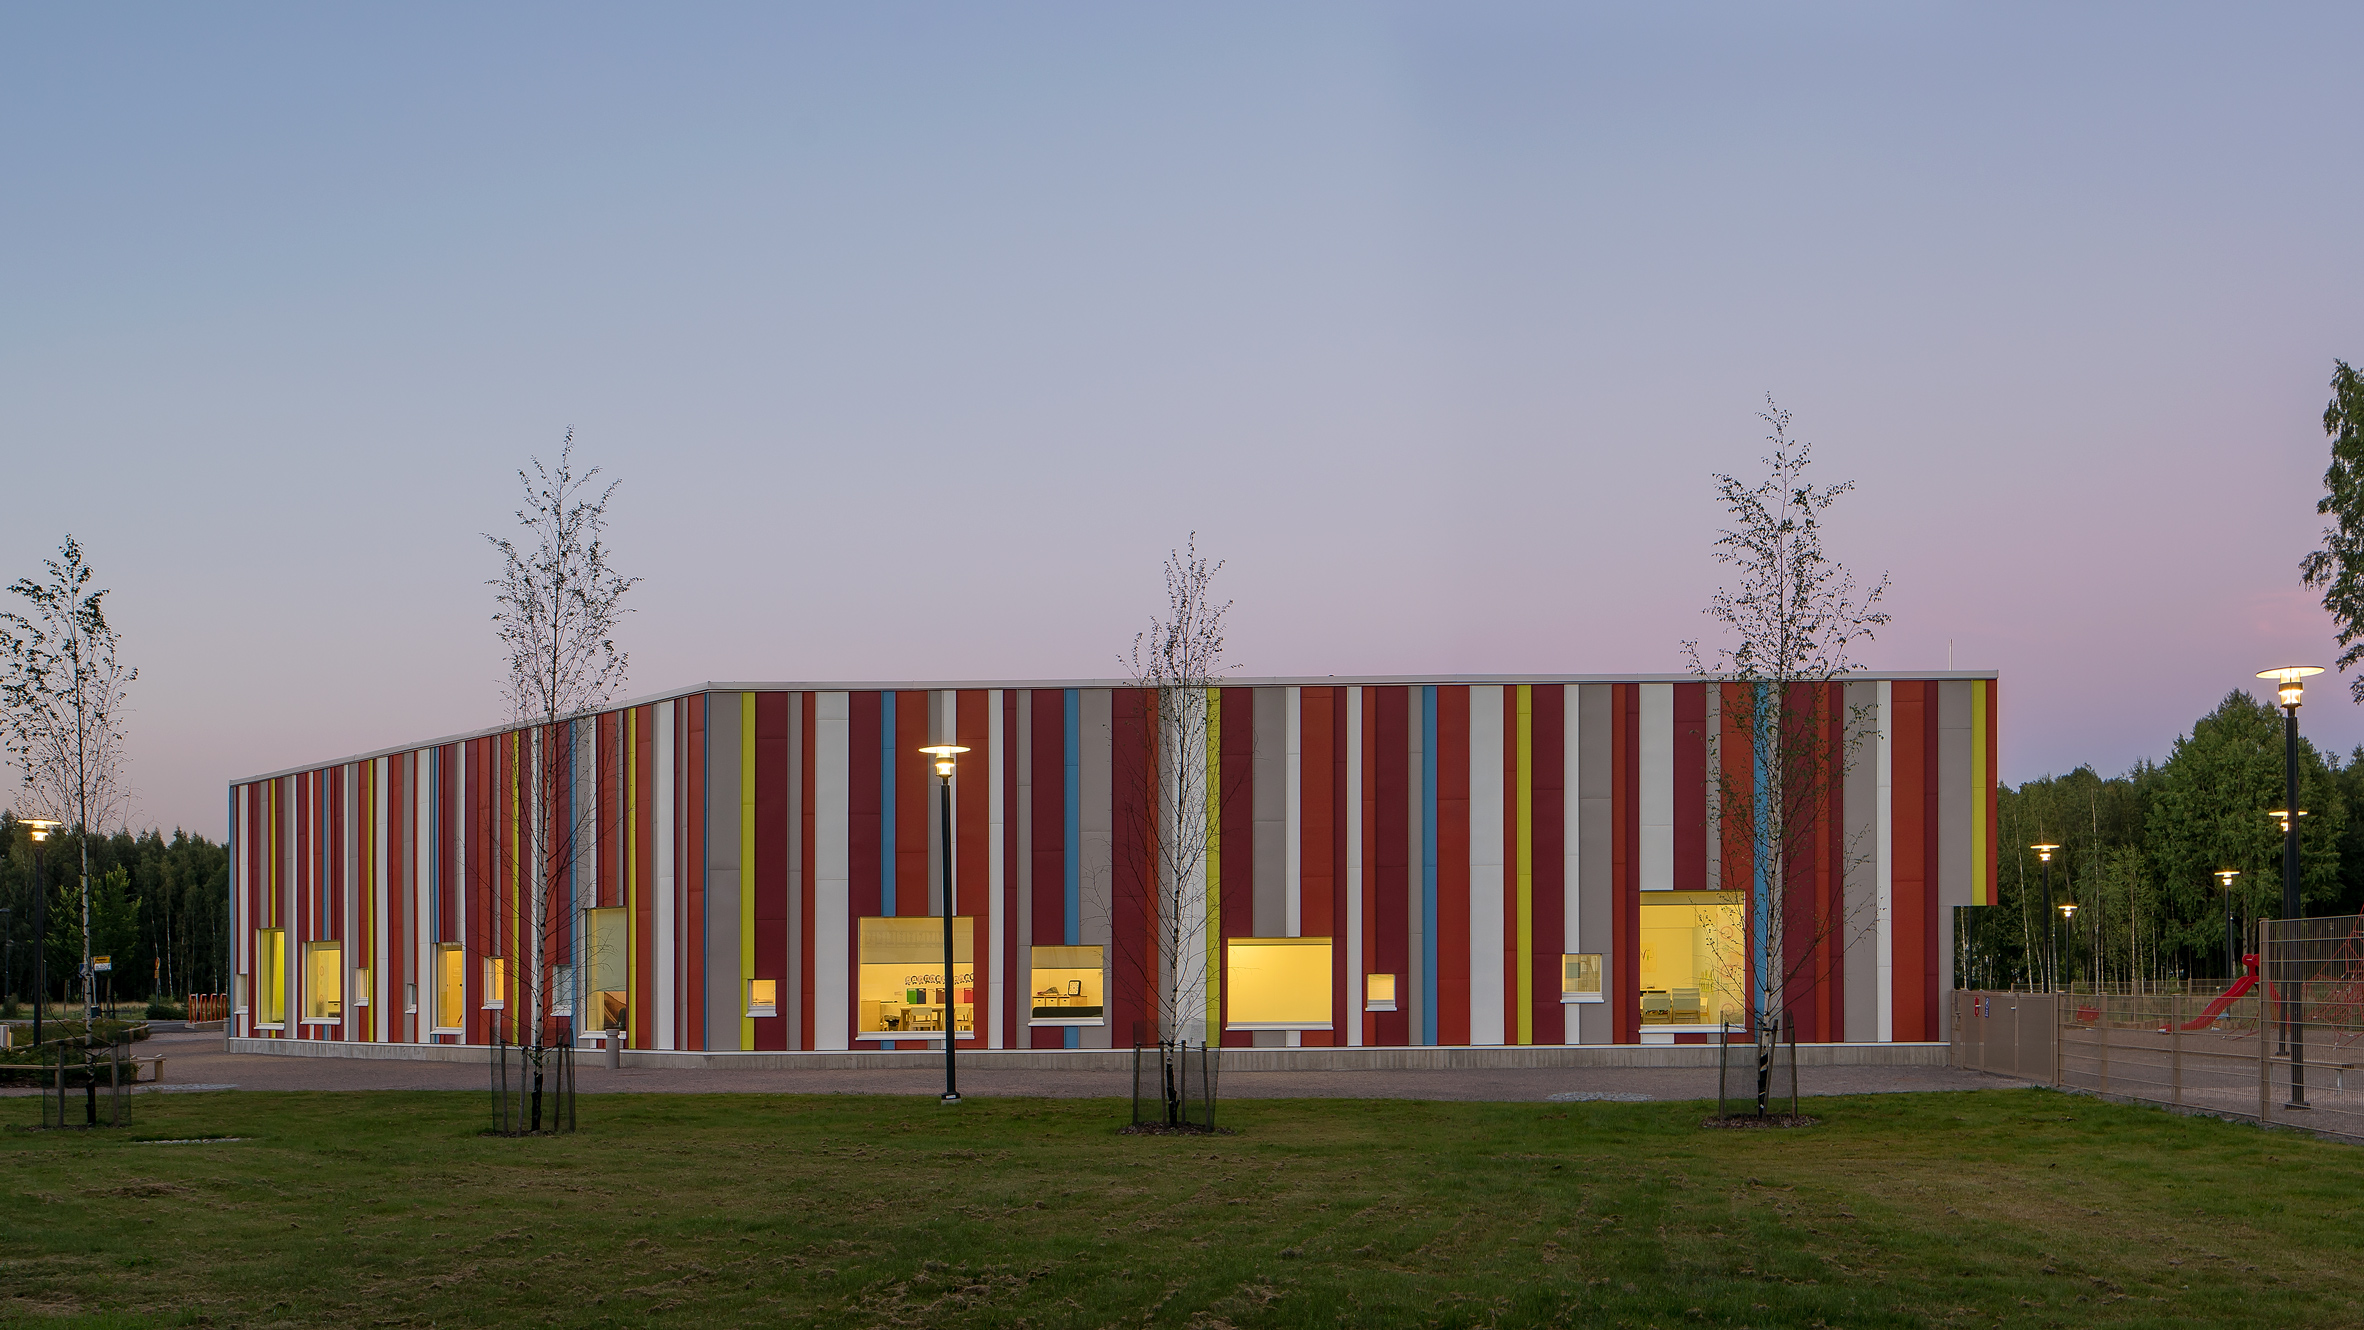 Painiitty Daycare Centre in Espoo by AFKS Architects